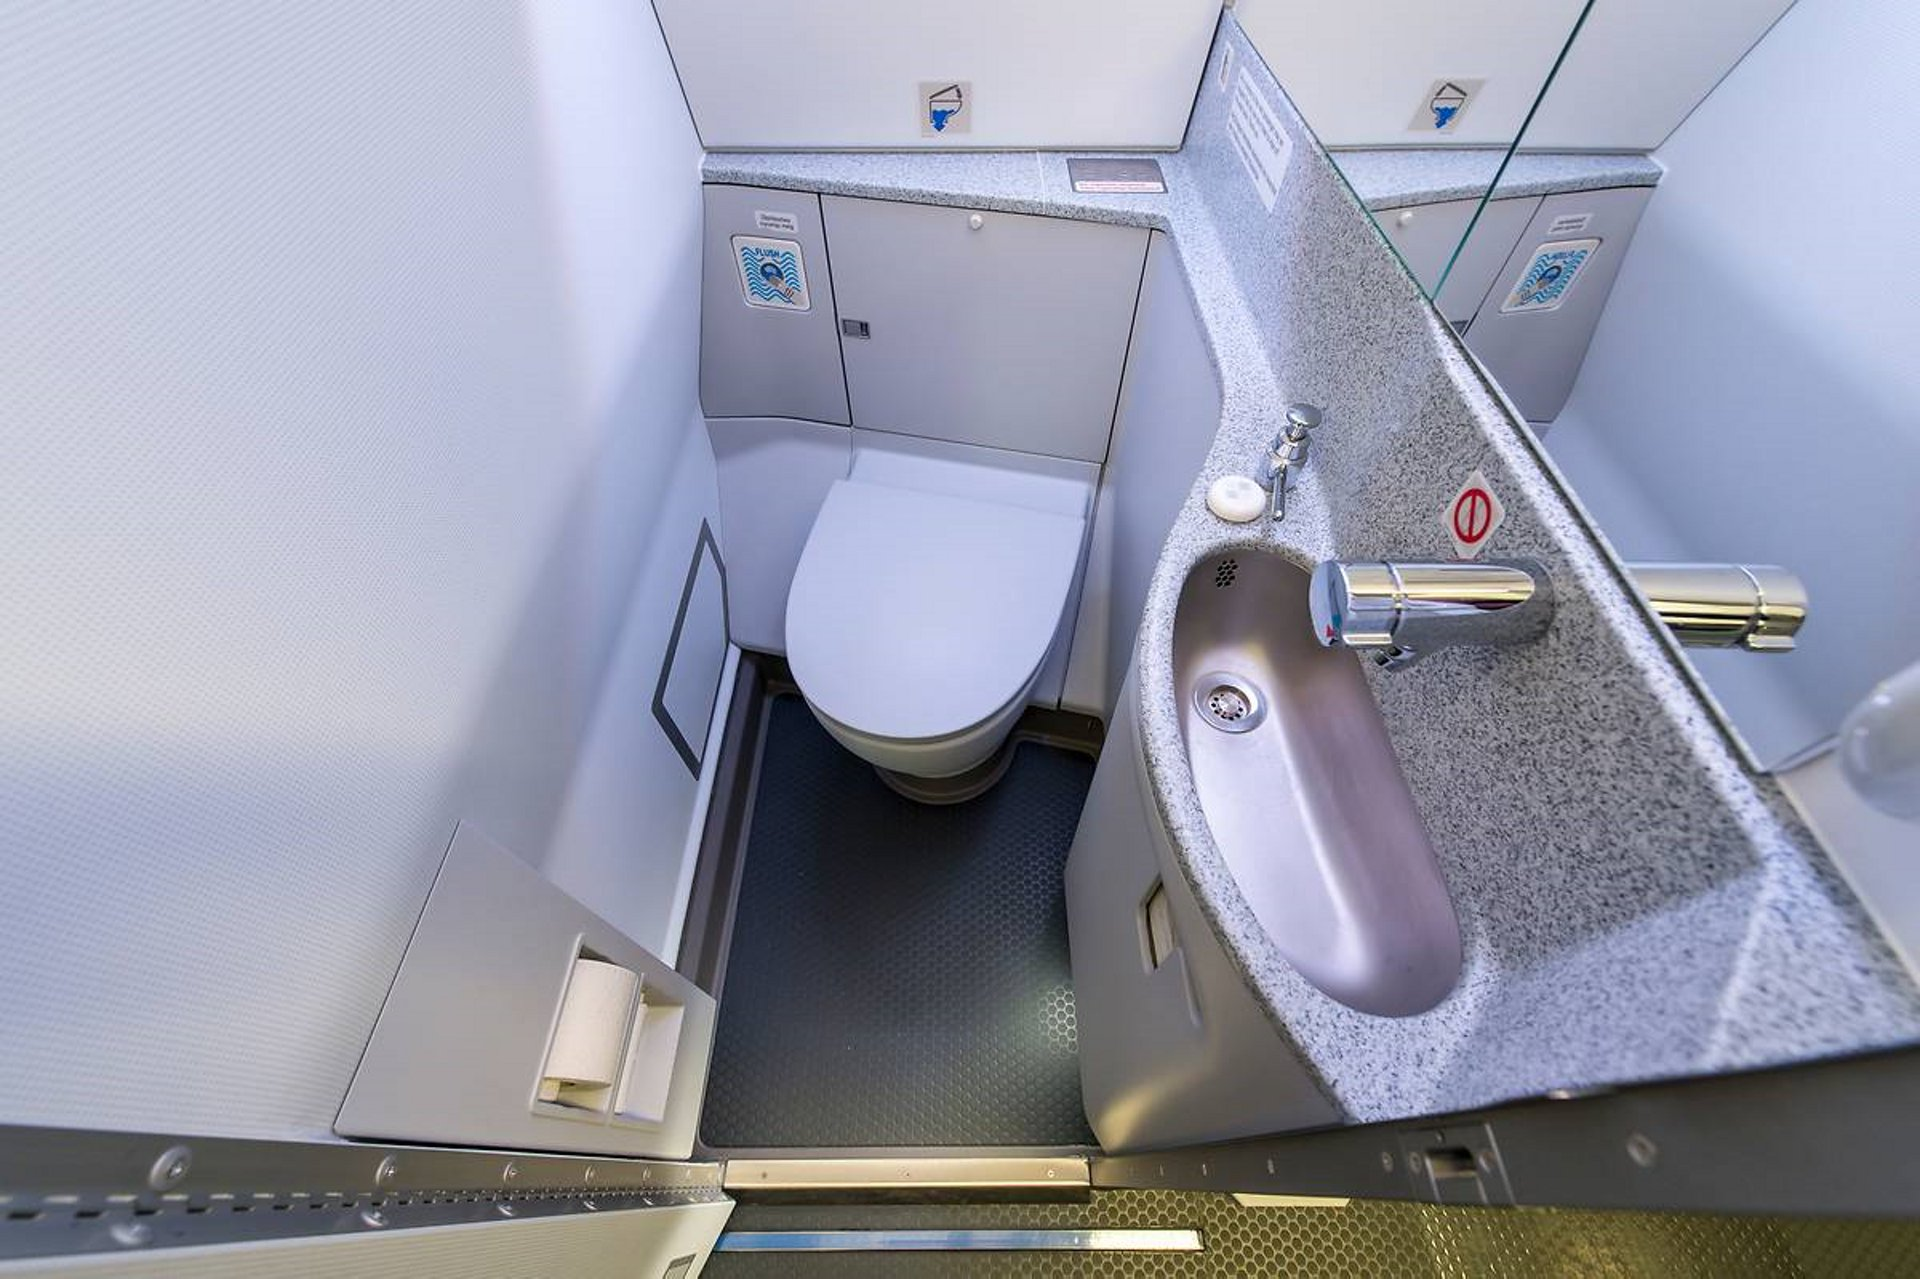 Optimised lavatory design providing more cabin length for more seats